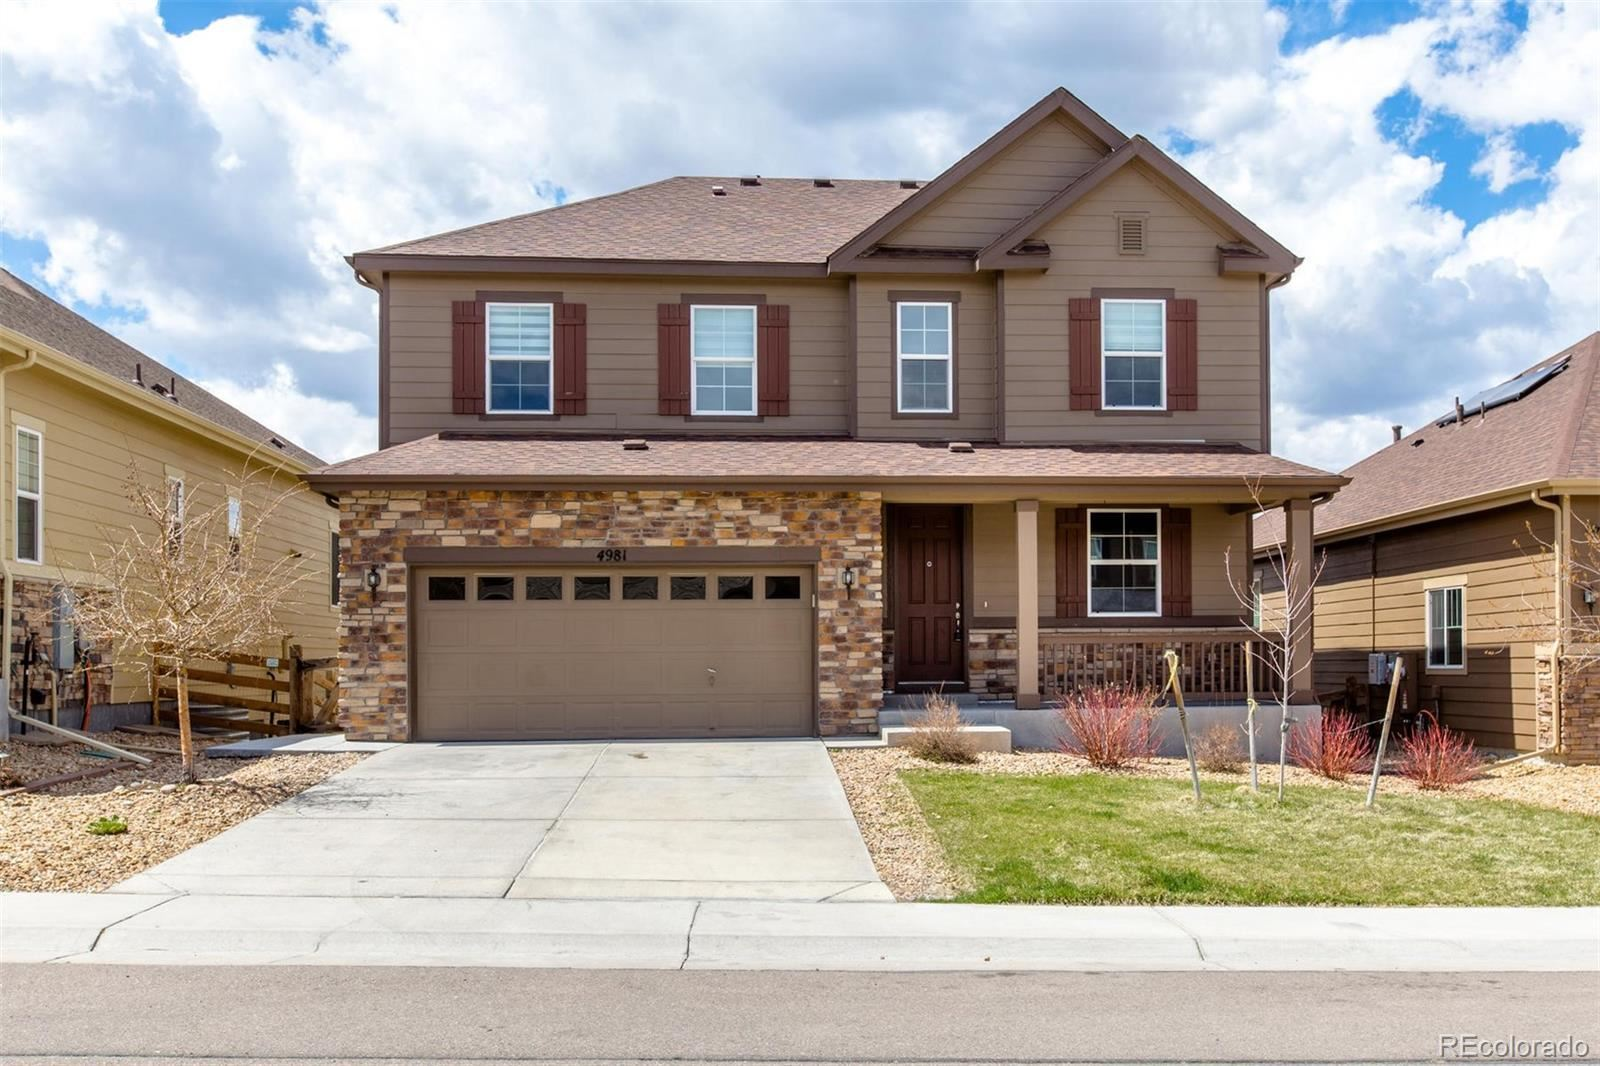 4981 S Versailles Circle, Aurora, CO 80015 - #: 9624388